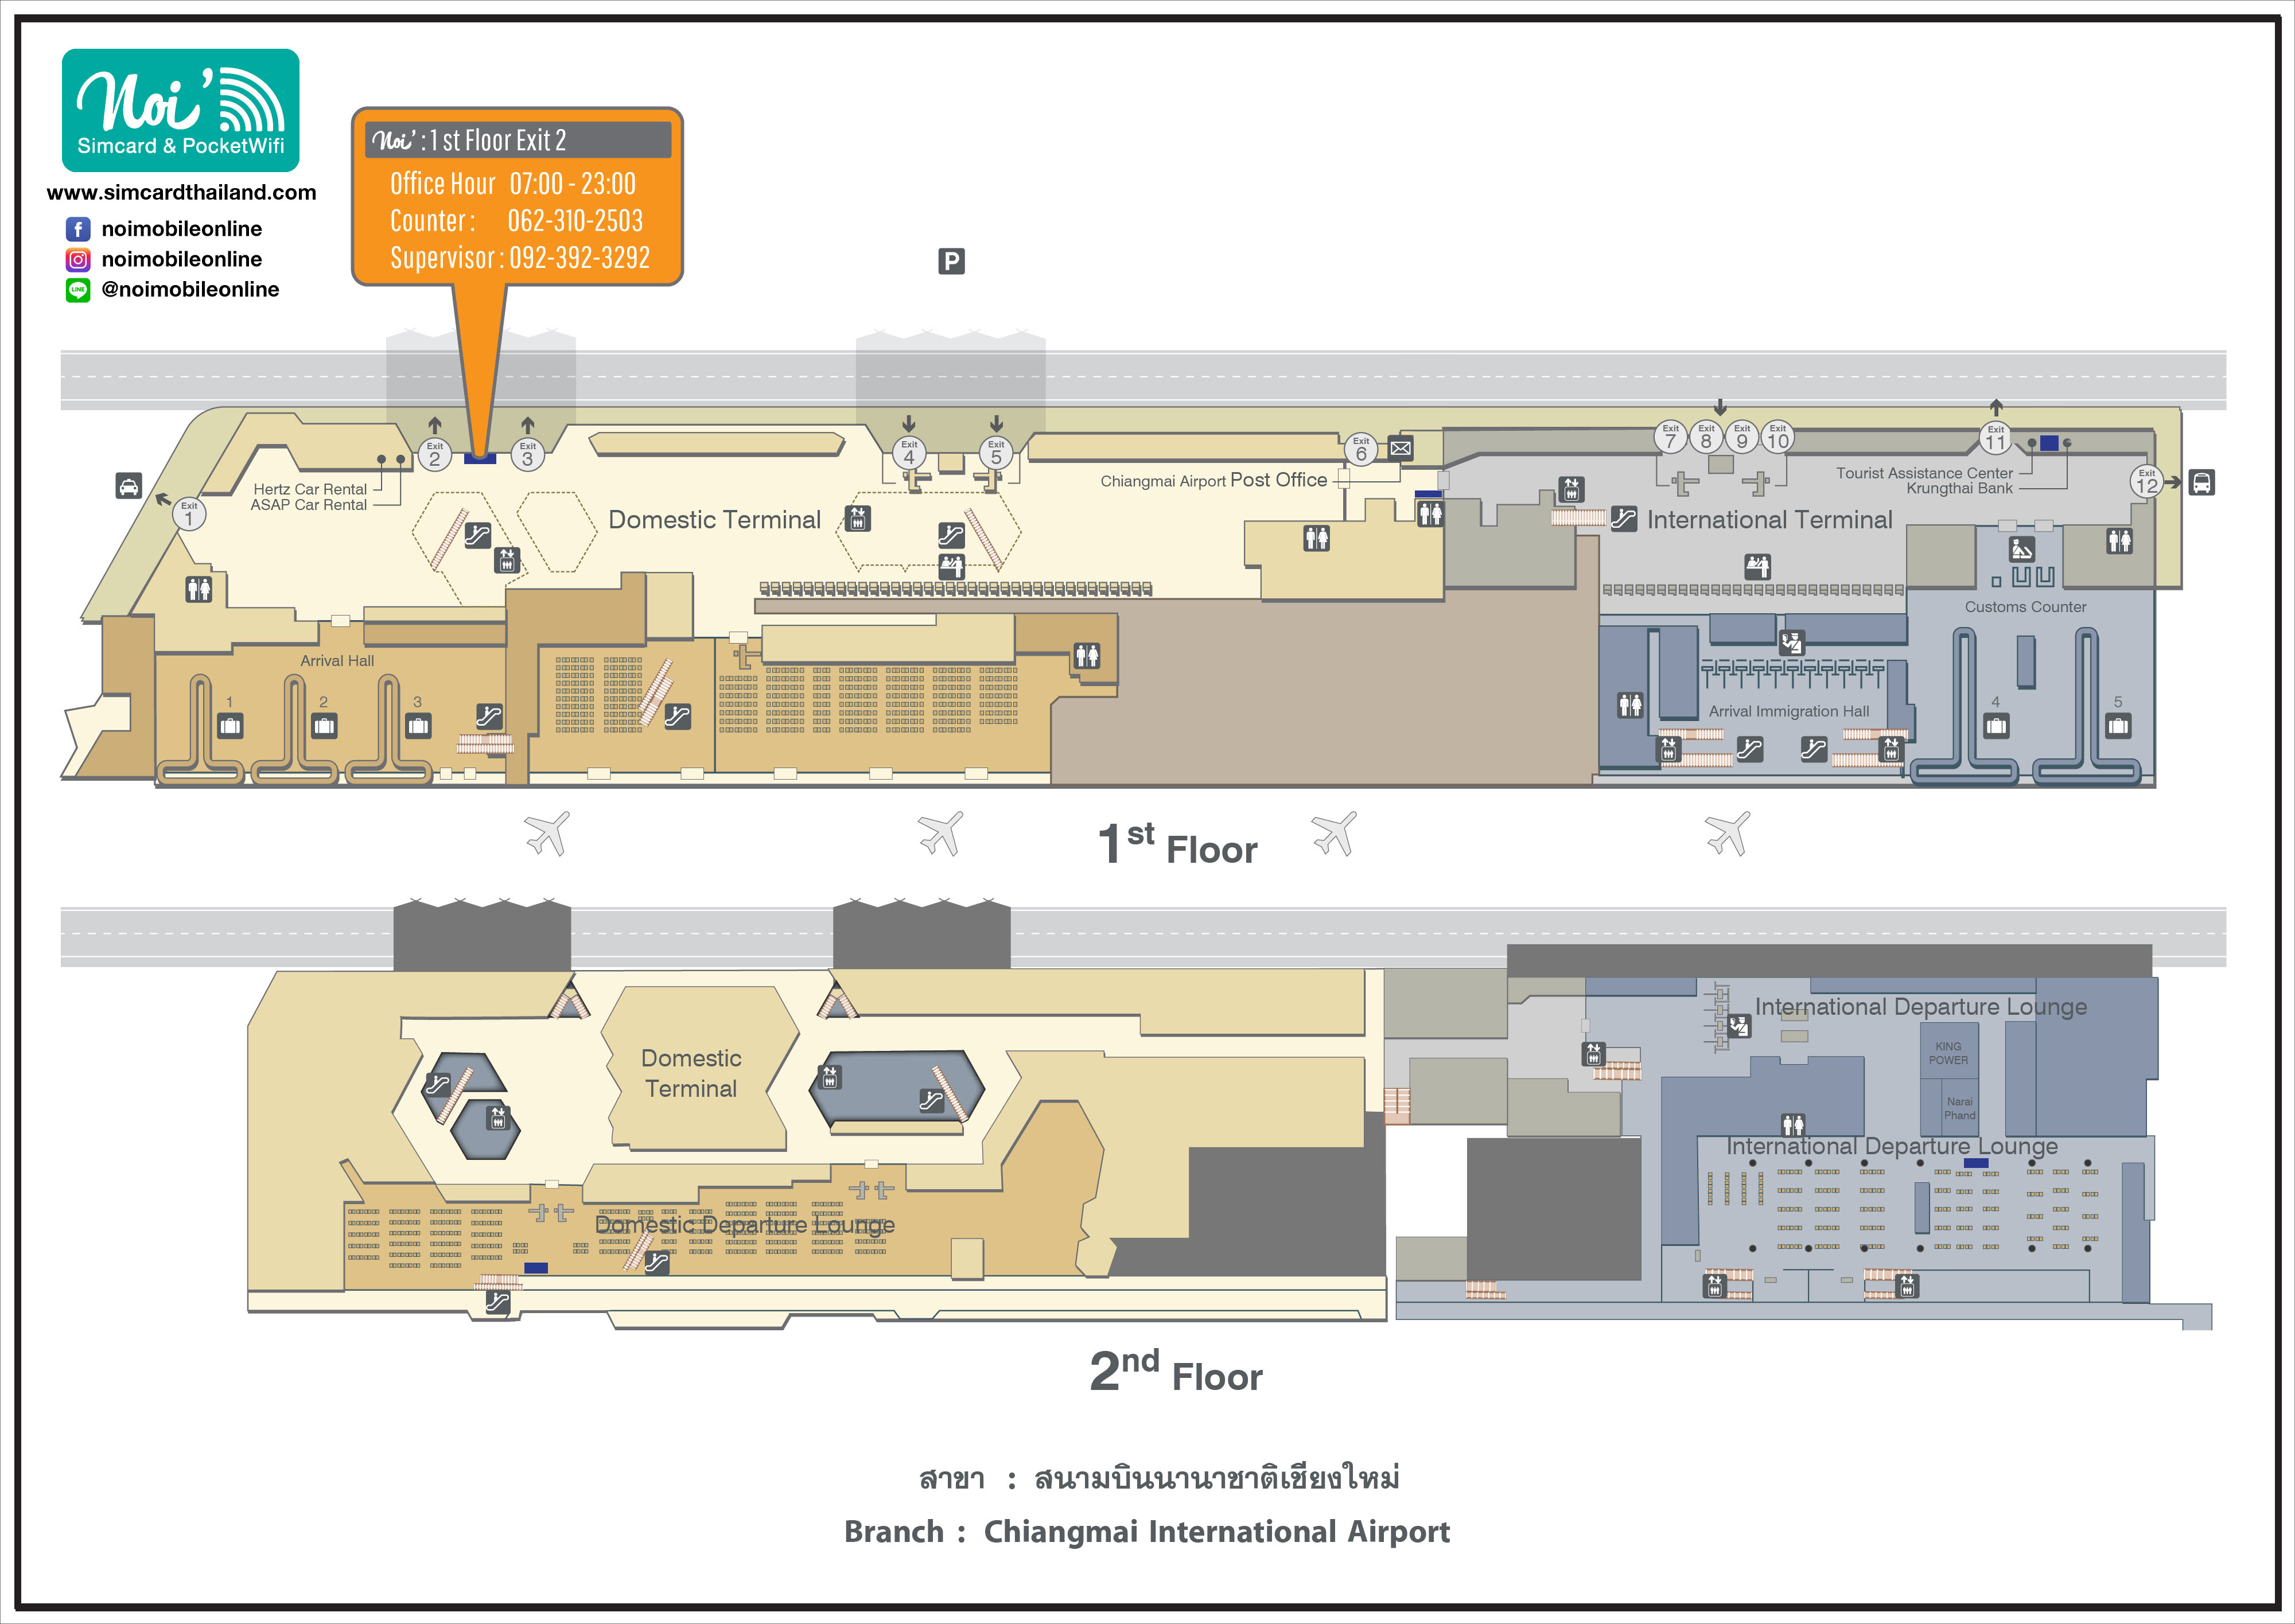 Chiangmai International Airport(Noi Mobile) map